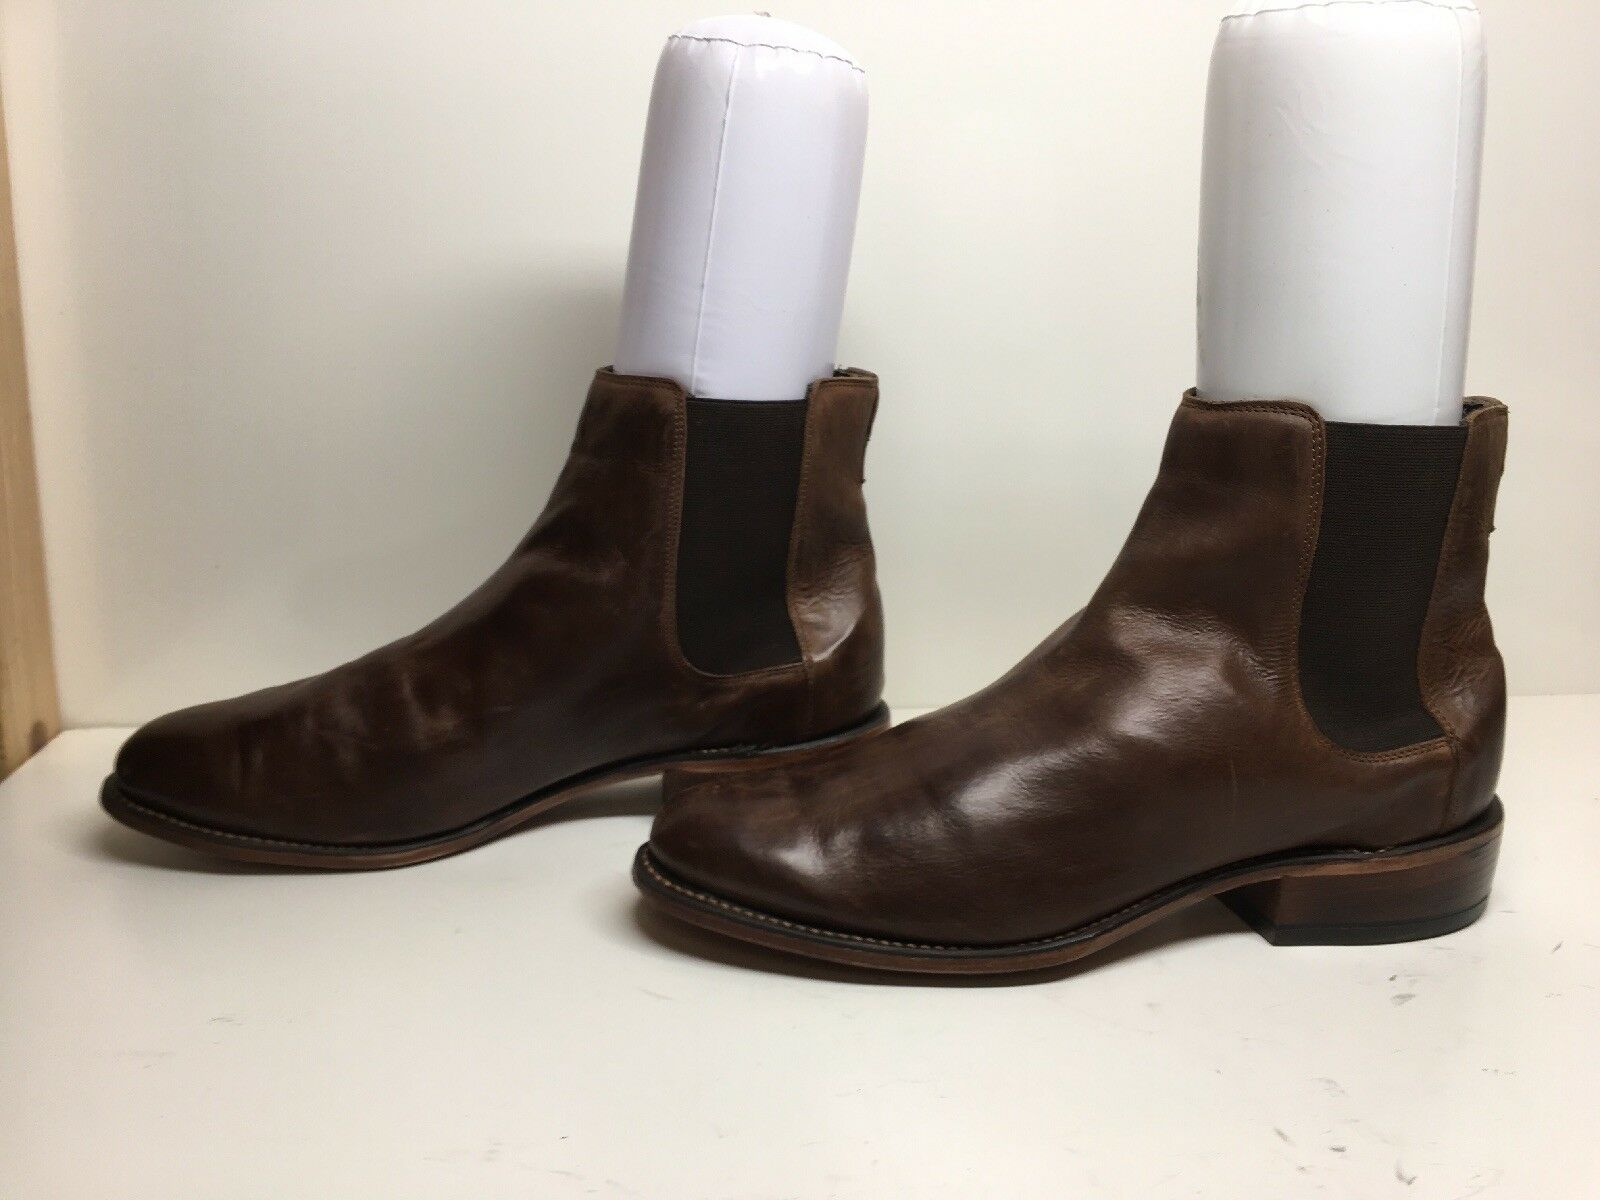 VTG MENS MADE IN USA CASUAL LEATHER BROWN BOOTS SIZE 11.5